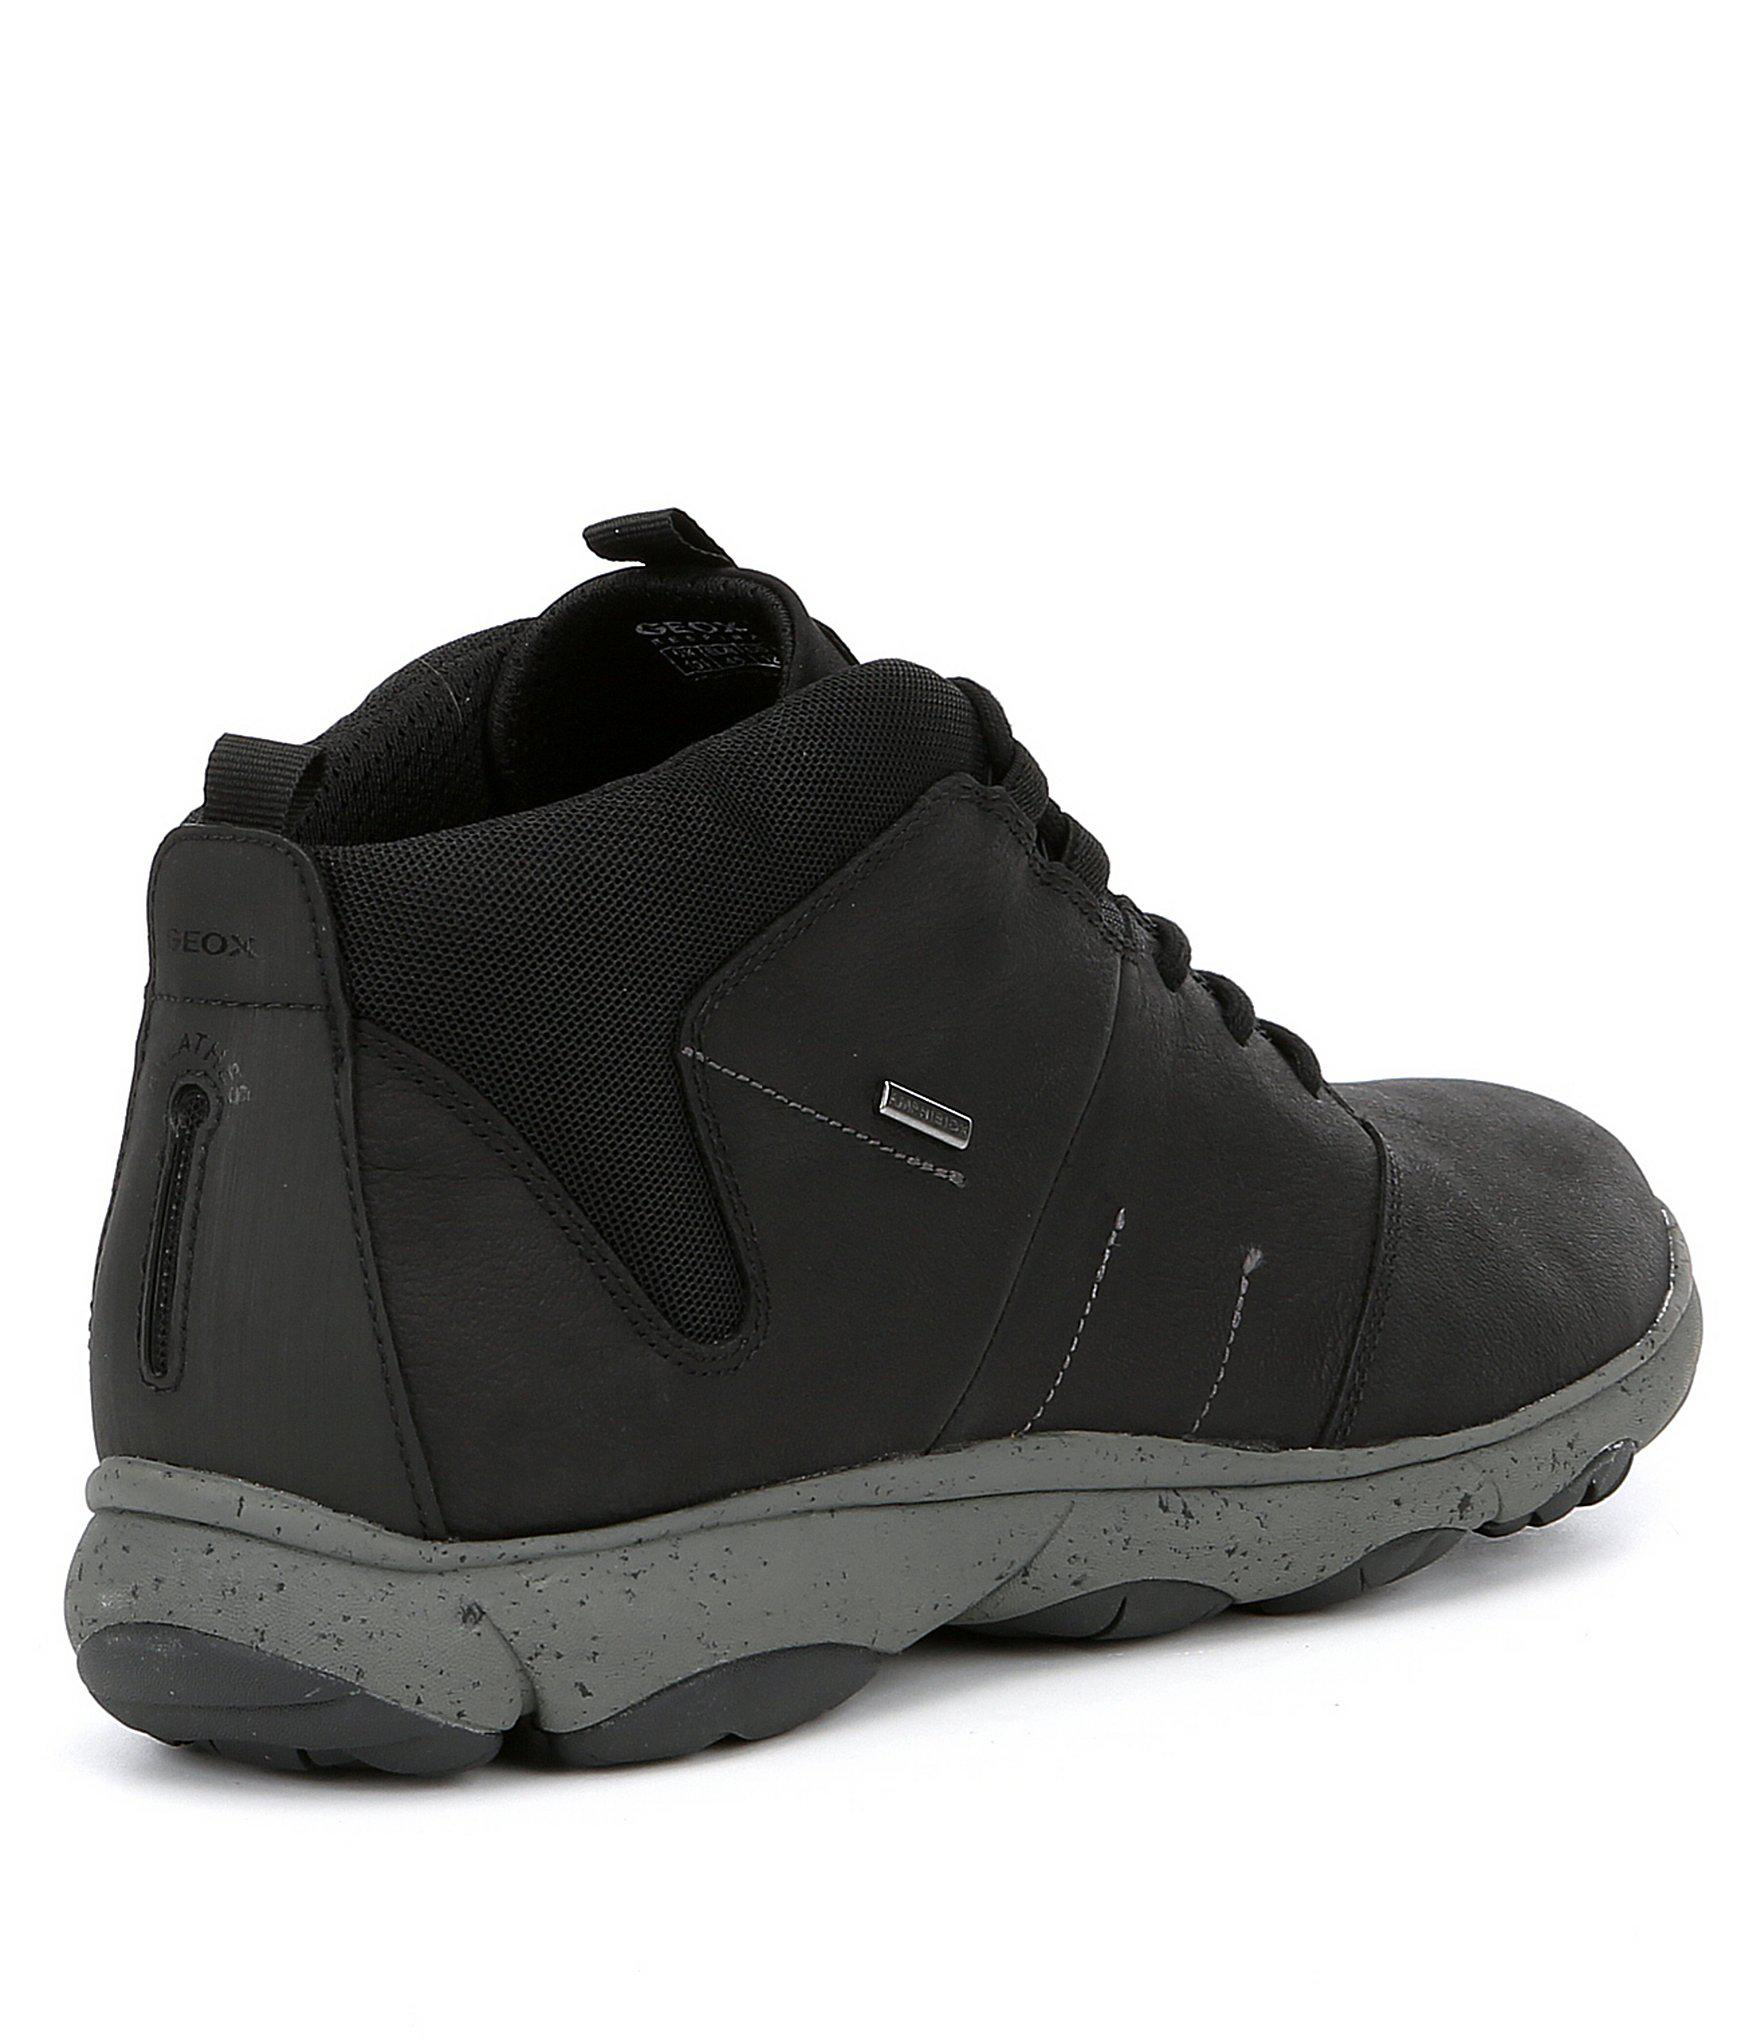 2bbc3486ded Lyst - Geox Men S Nebula Sneaker Boots in Black for Men